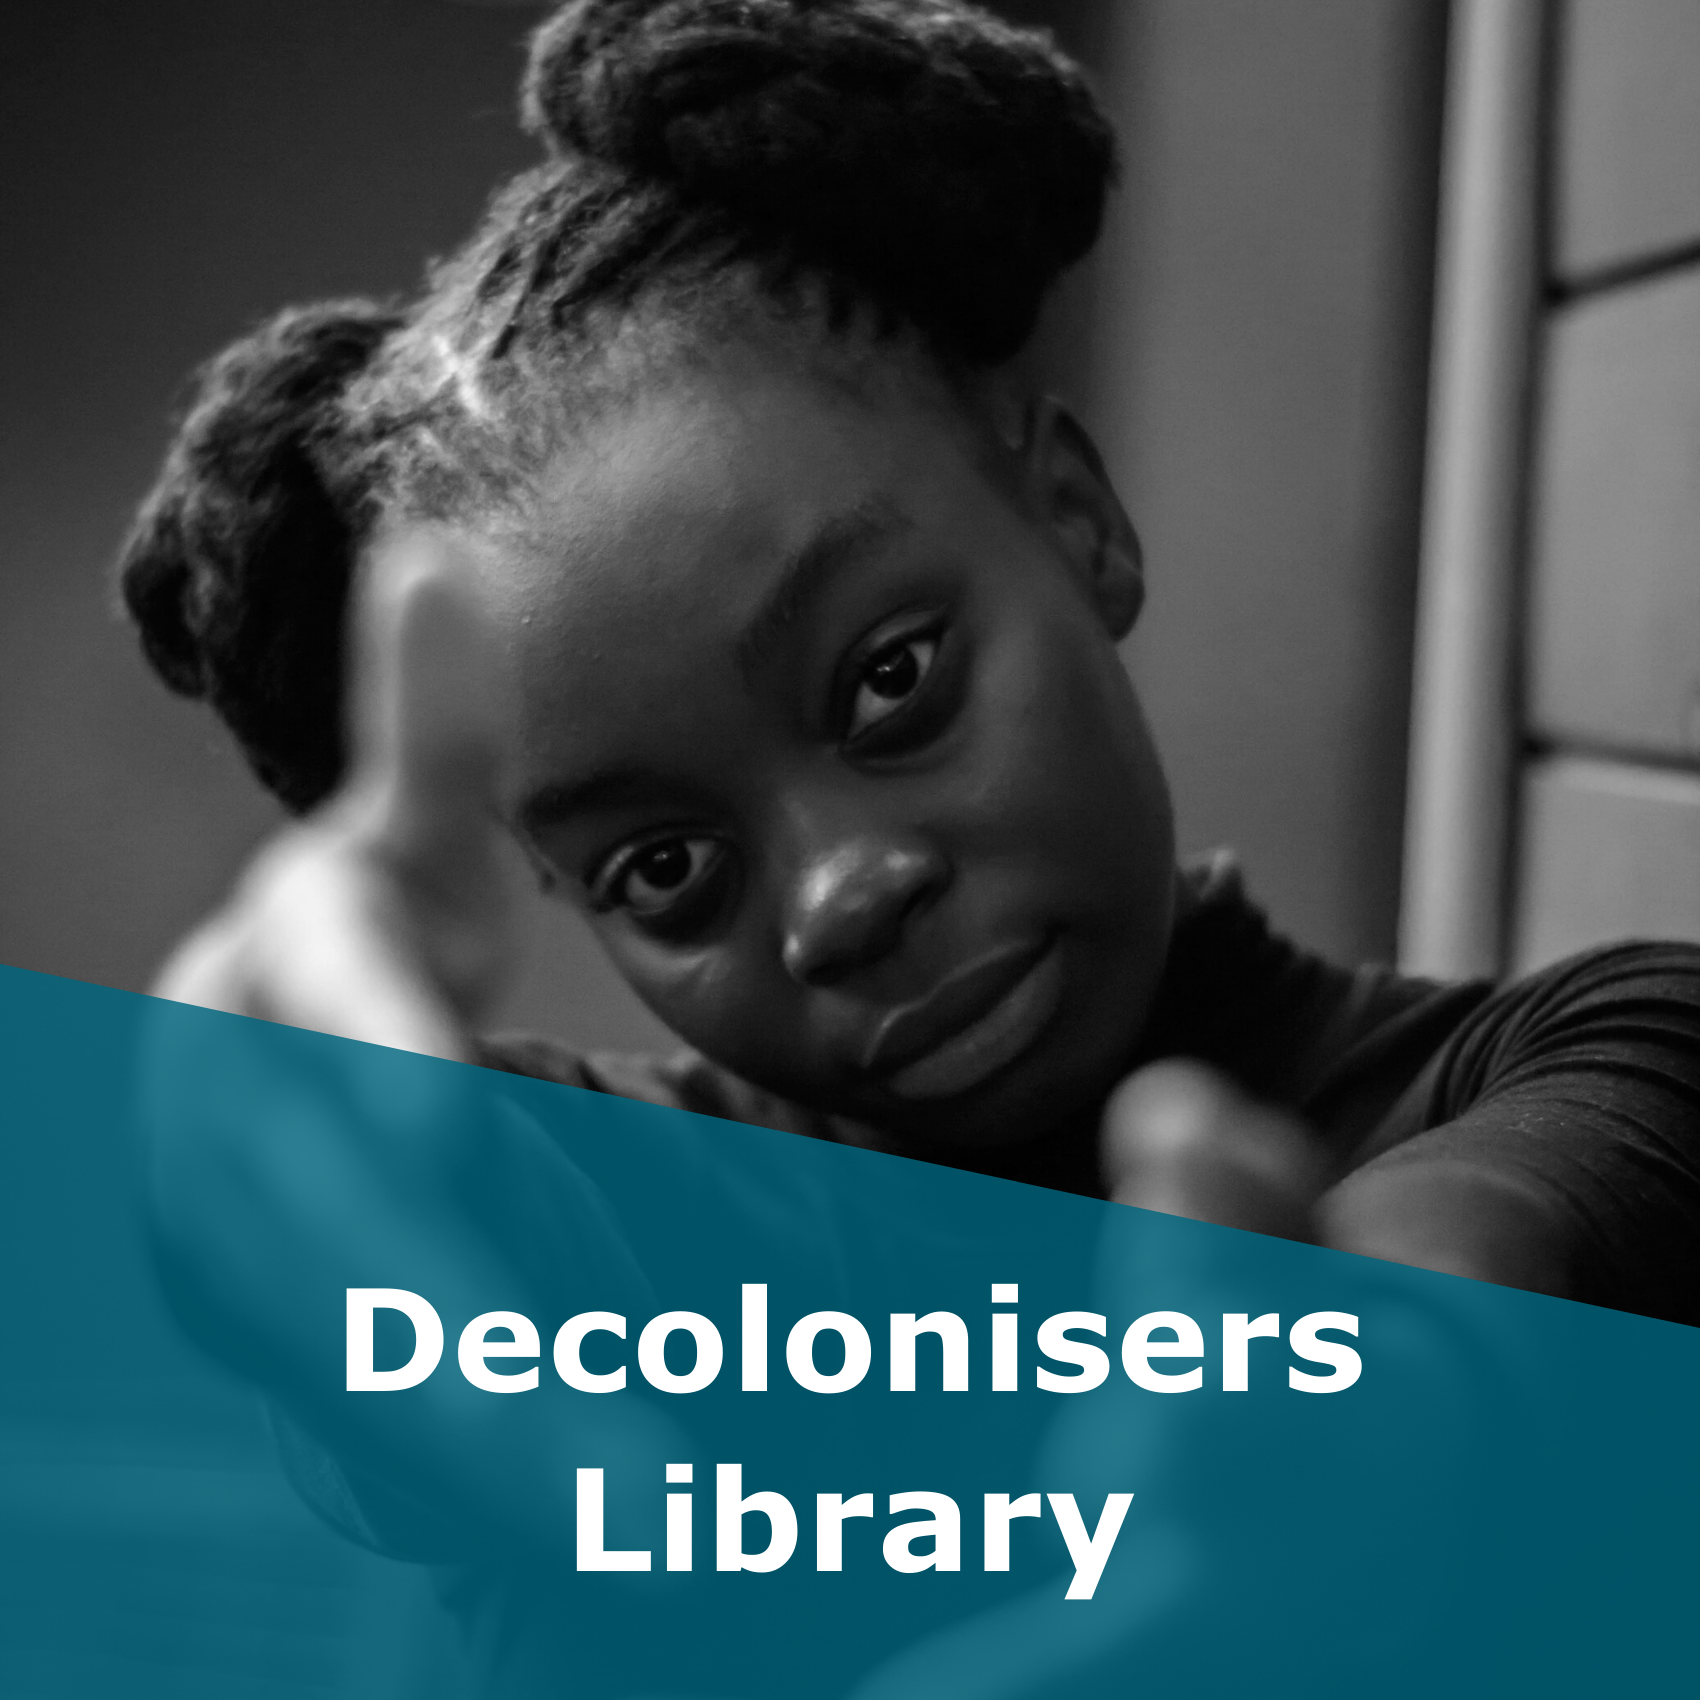 Decolonisers Library